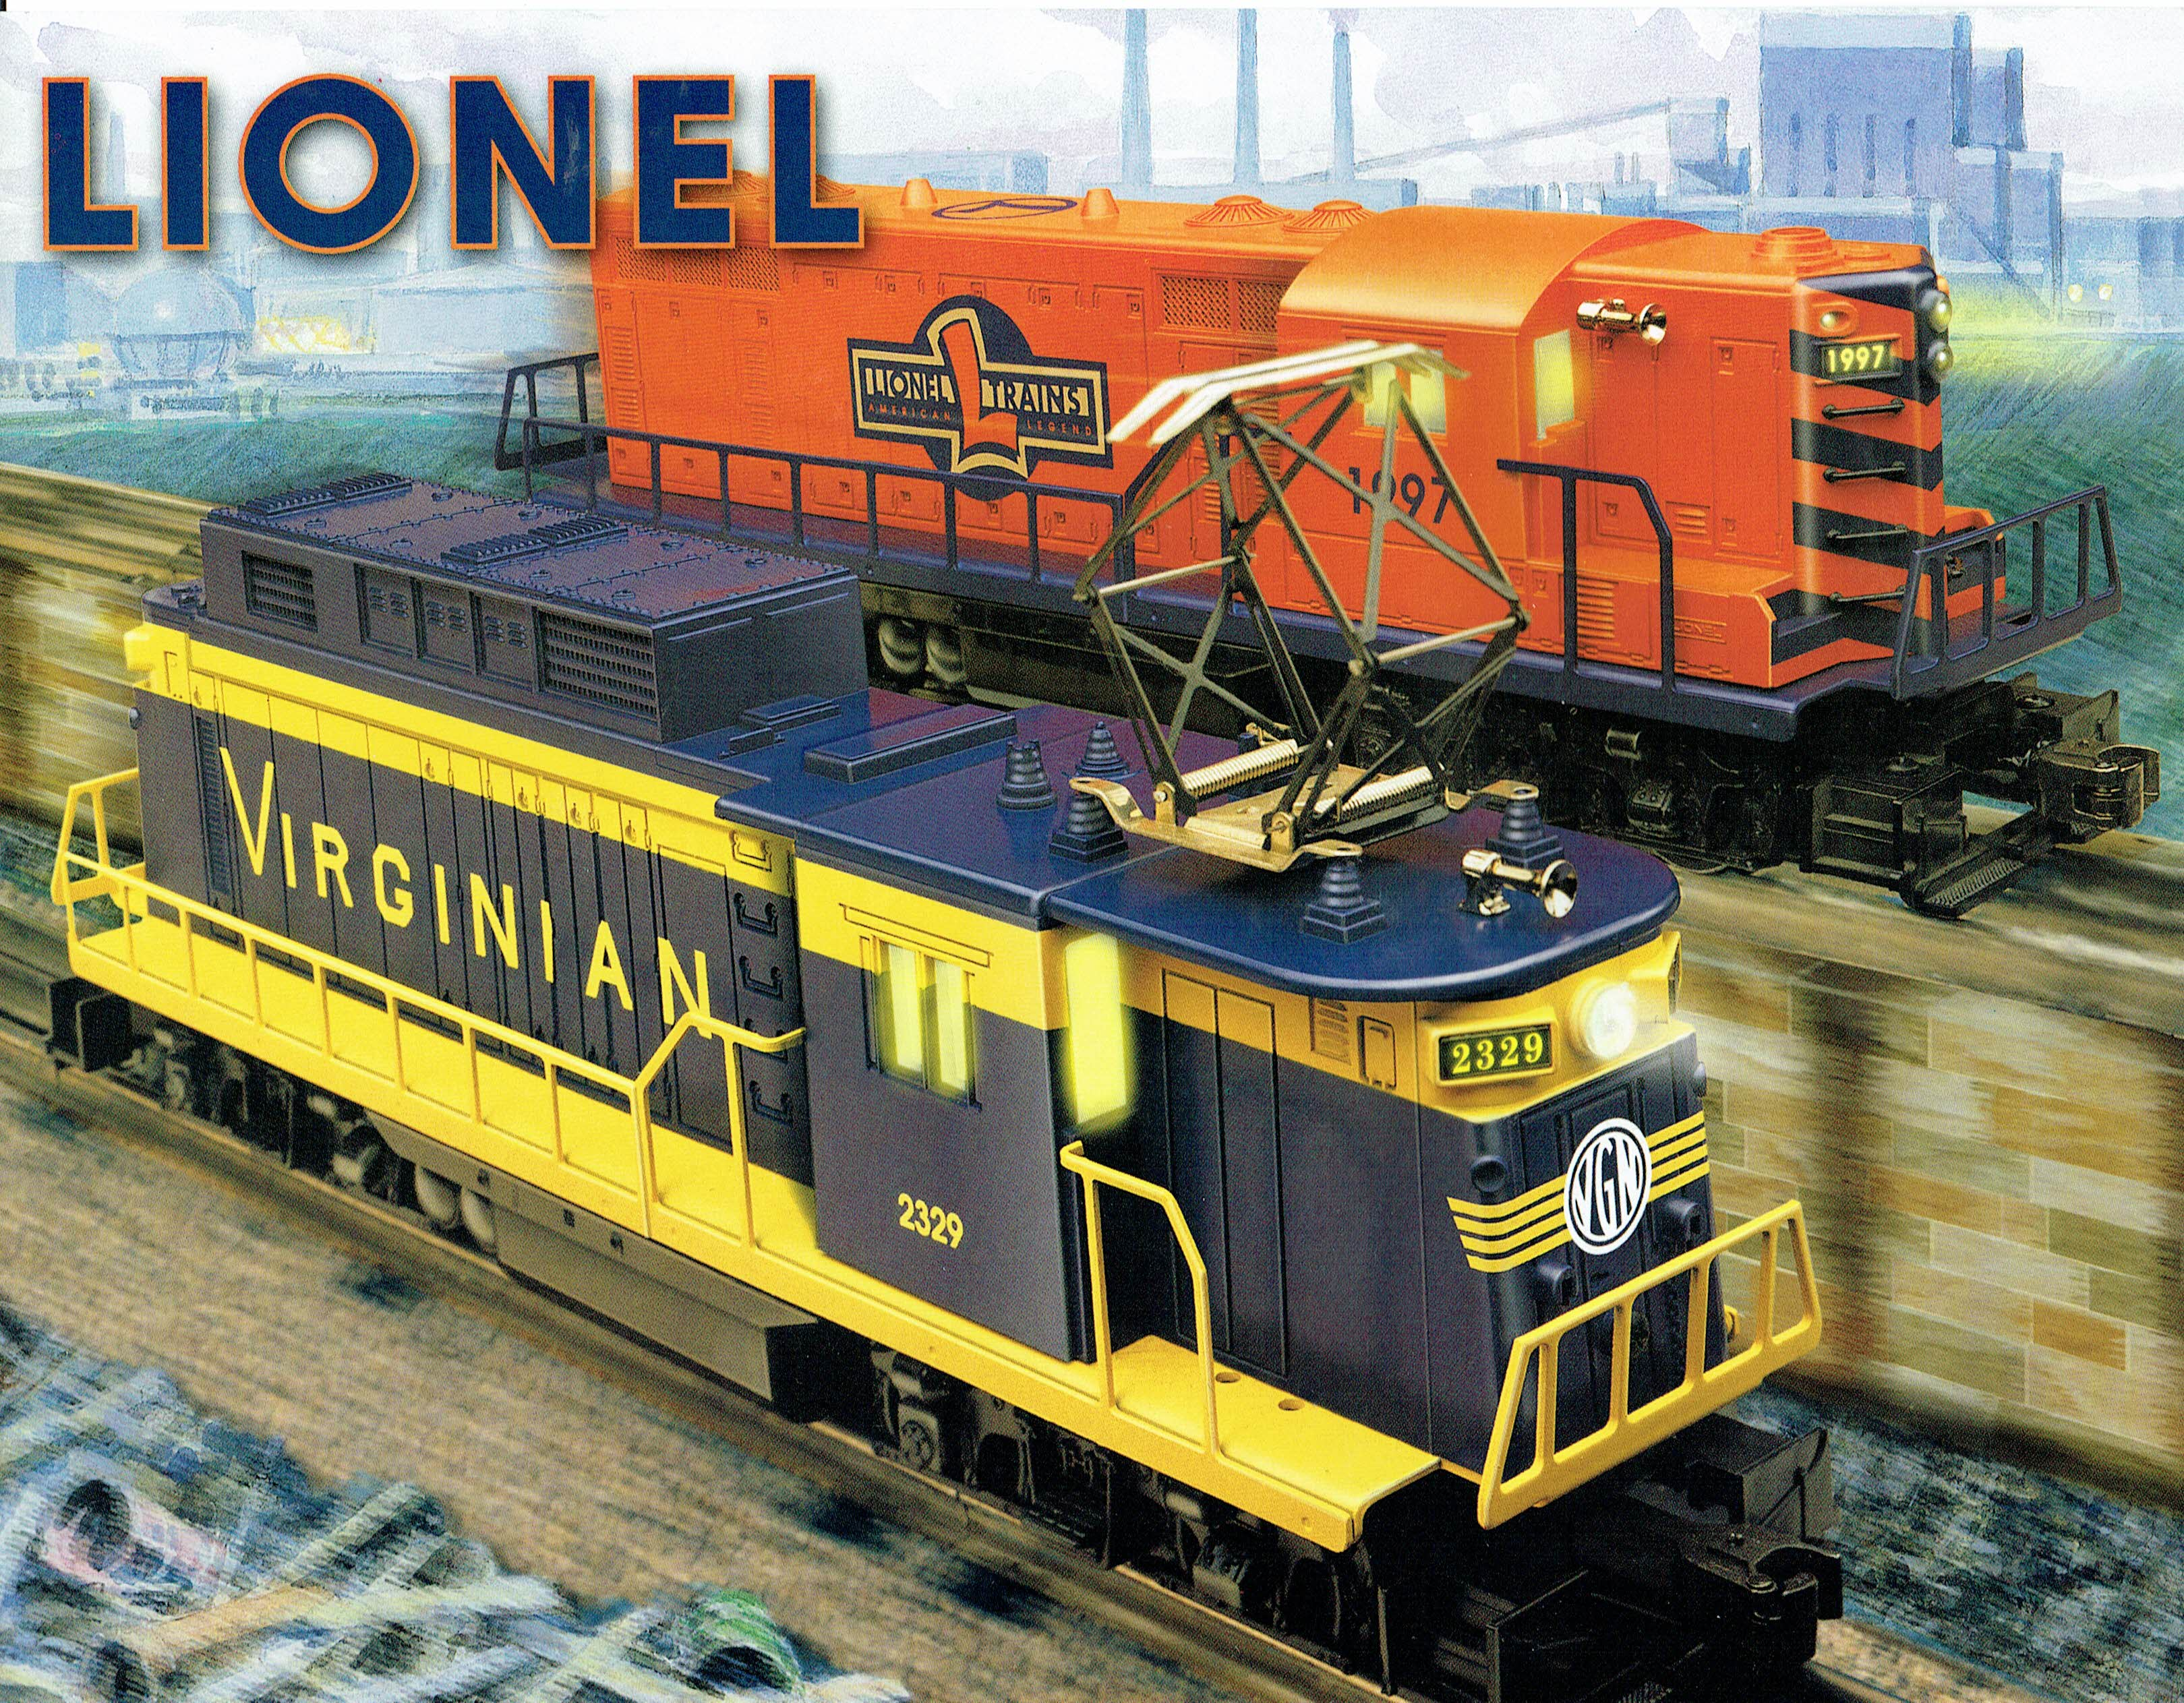 Lionel 1997 (Virginian Rectifier on cover) Flier image